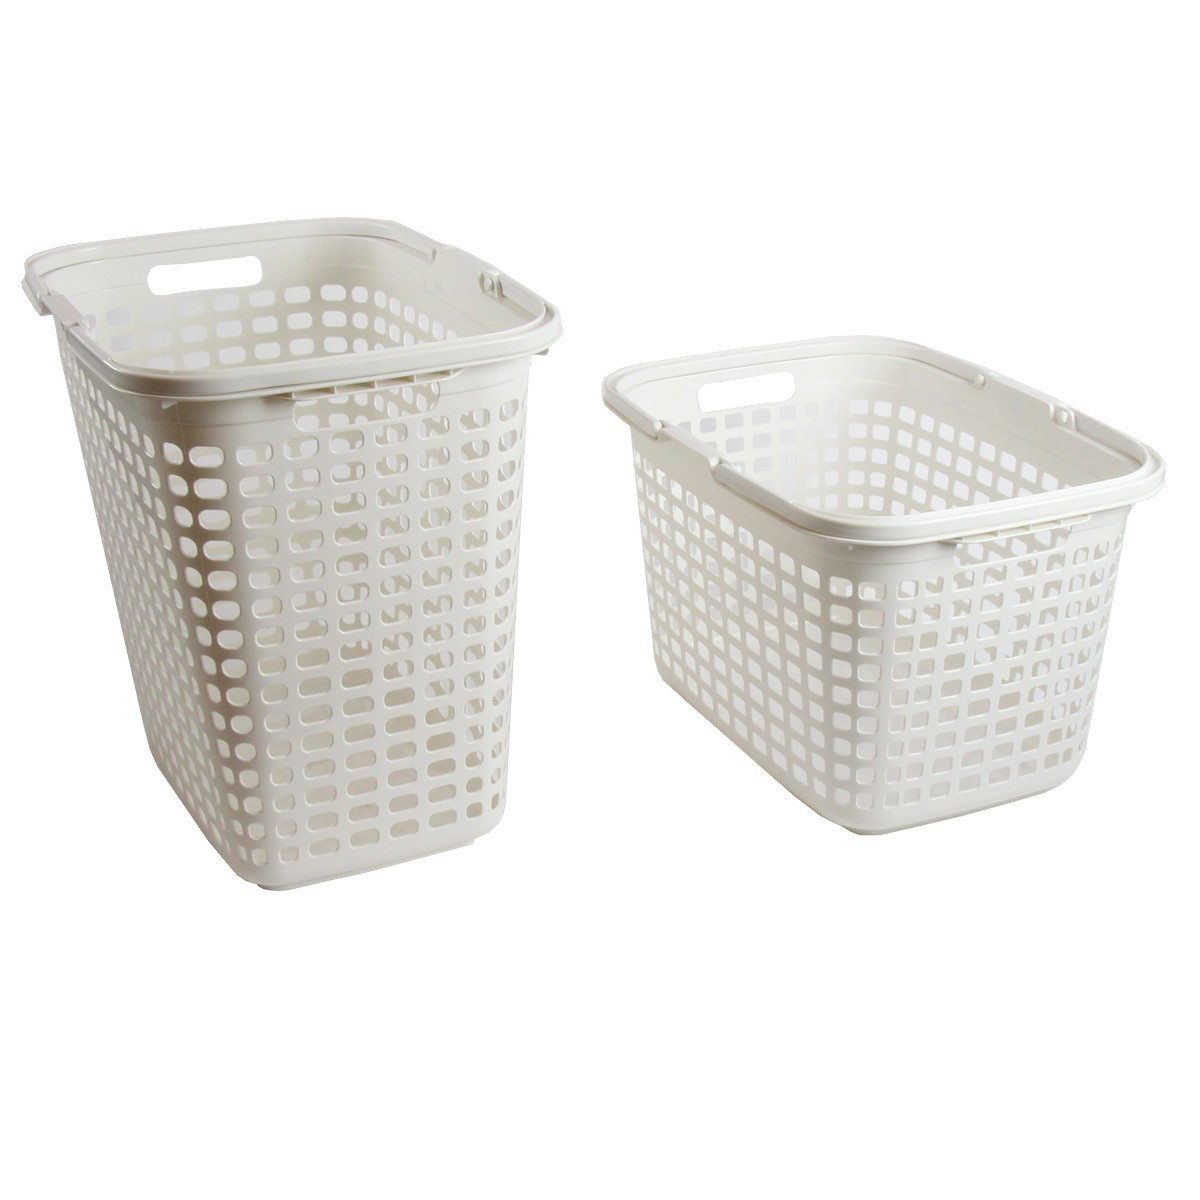 panier linge en plastique blanc 36 litres. Black Bedroom Furniture Sets. Home Design Ideas